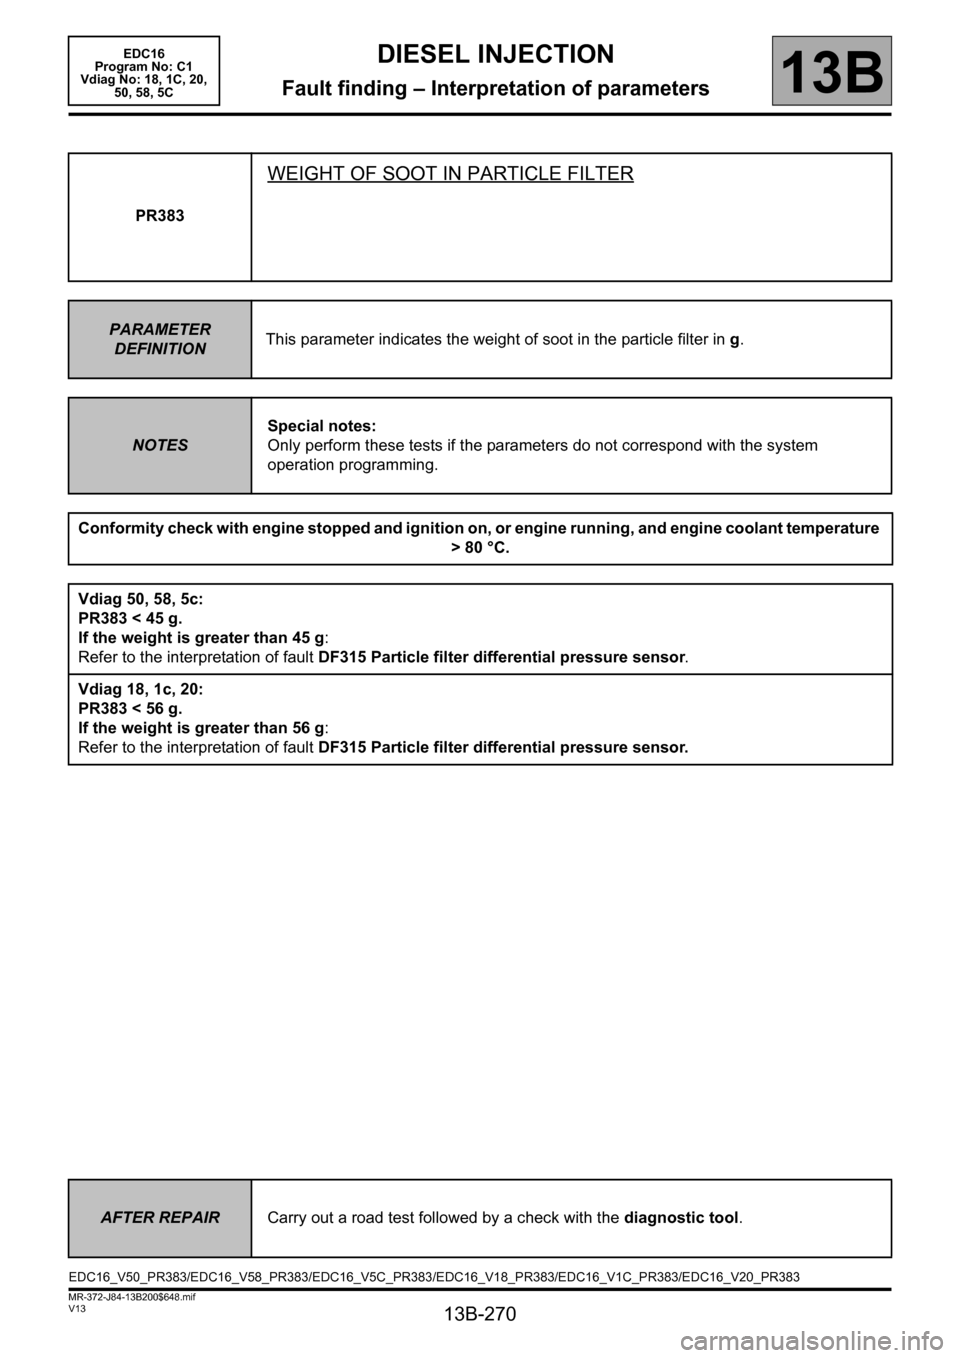 RENAULT SCENIC 2011 J95 / 3.G Engine And Peripherals EDC16 Workshop Manual, Page 270